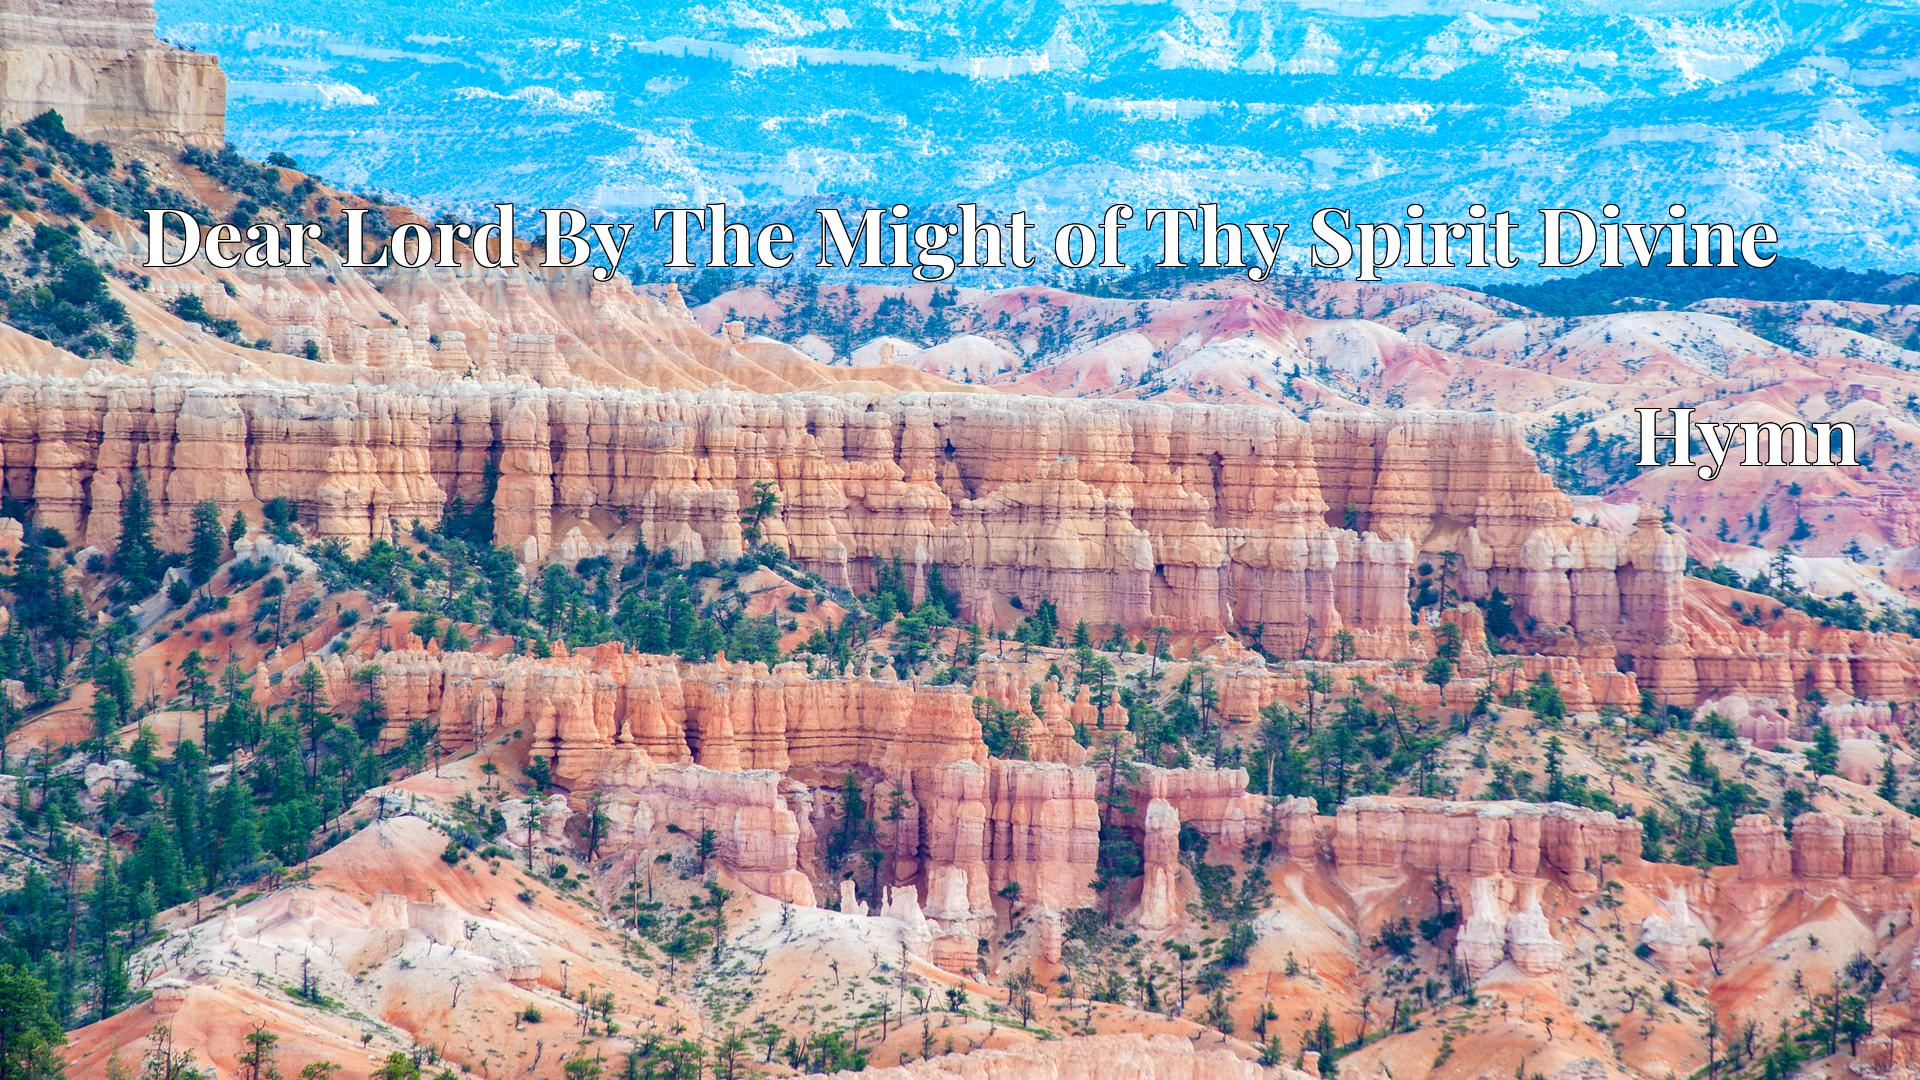 Dear Lord By The Might of Thy Spirit Divine - Hymn